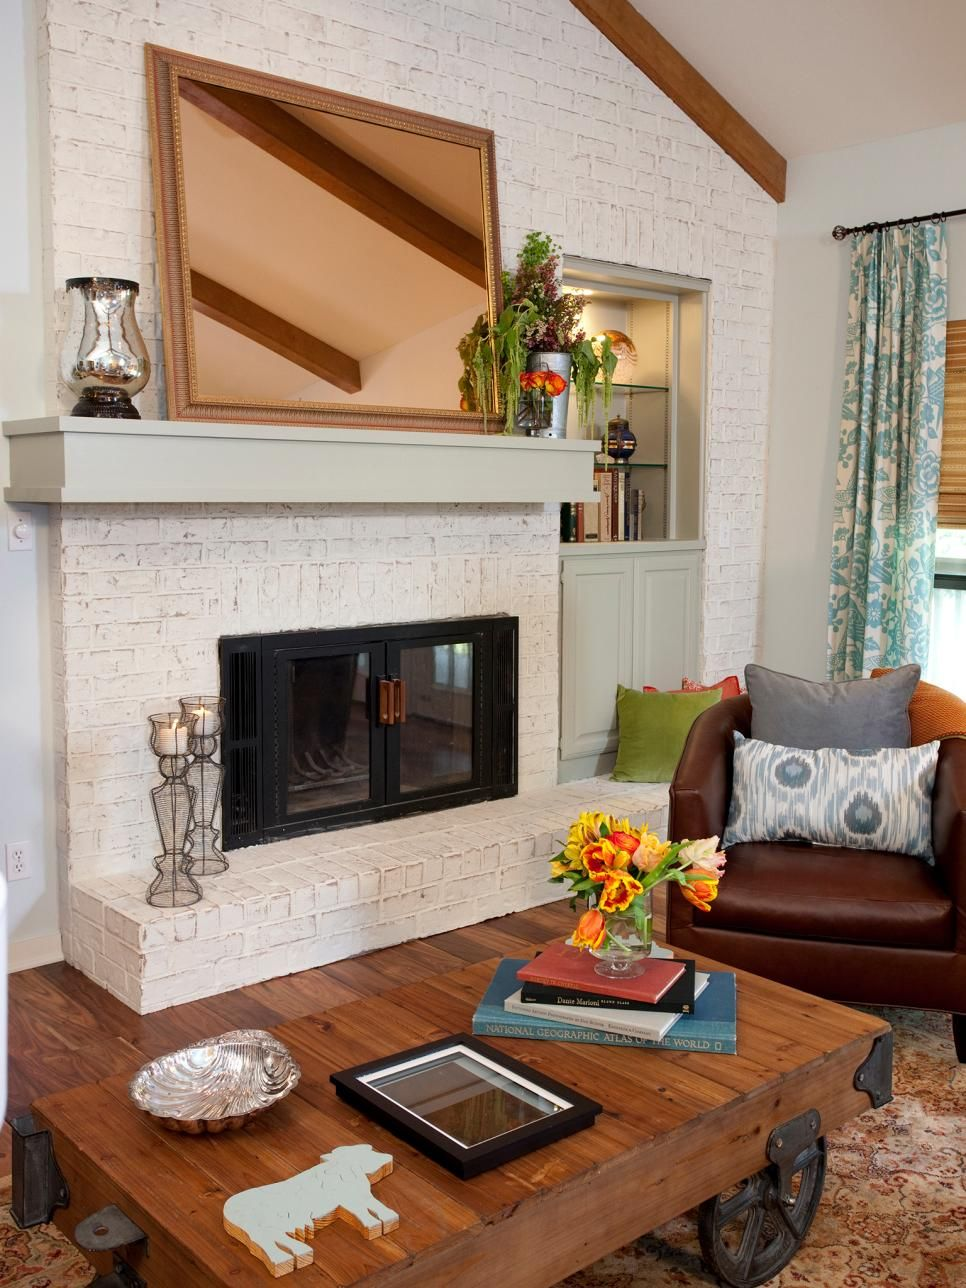 As seen on HGTV's Property Brothers, the focal point of ...